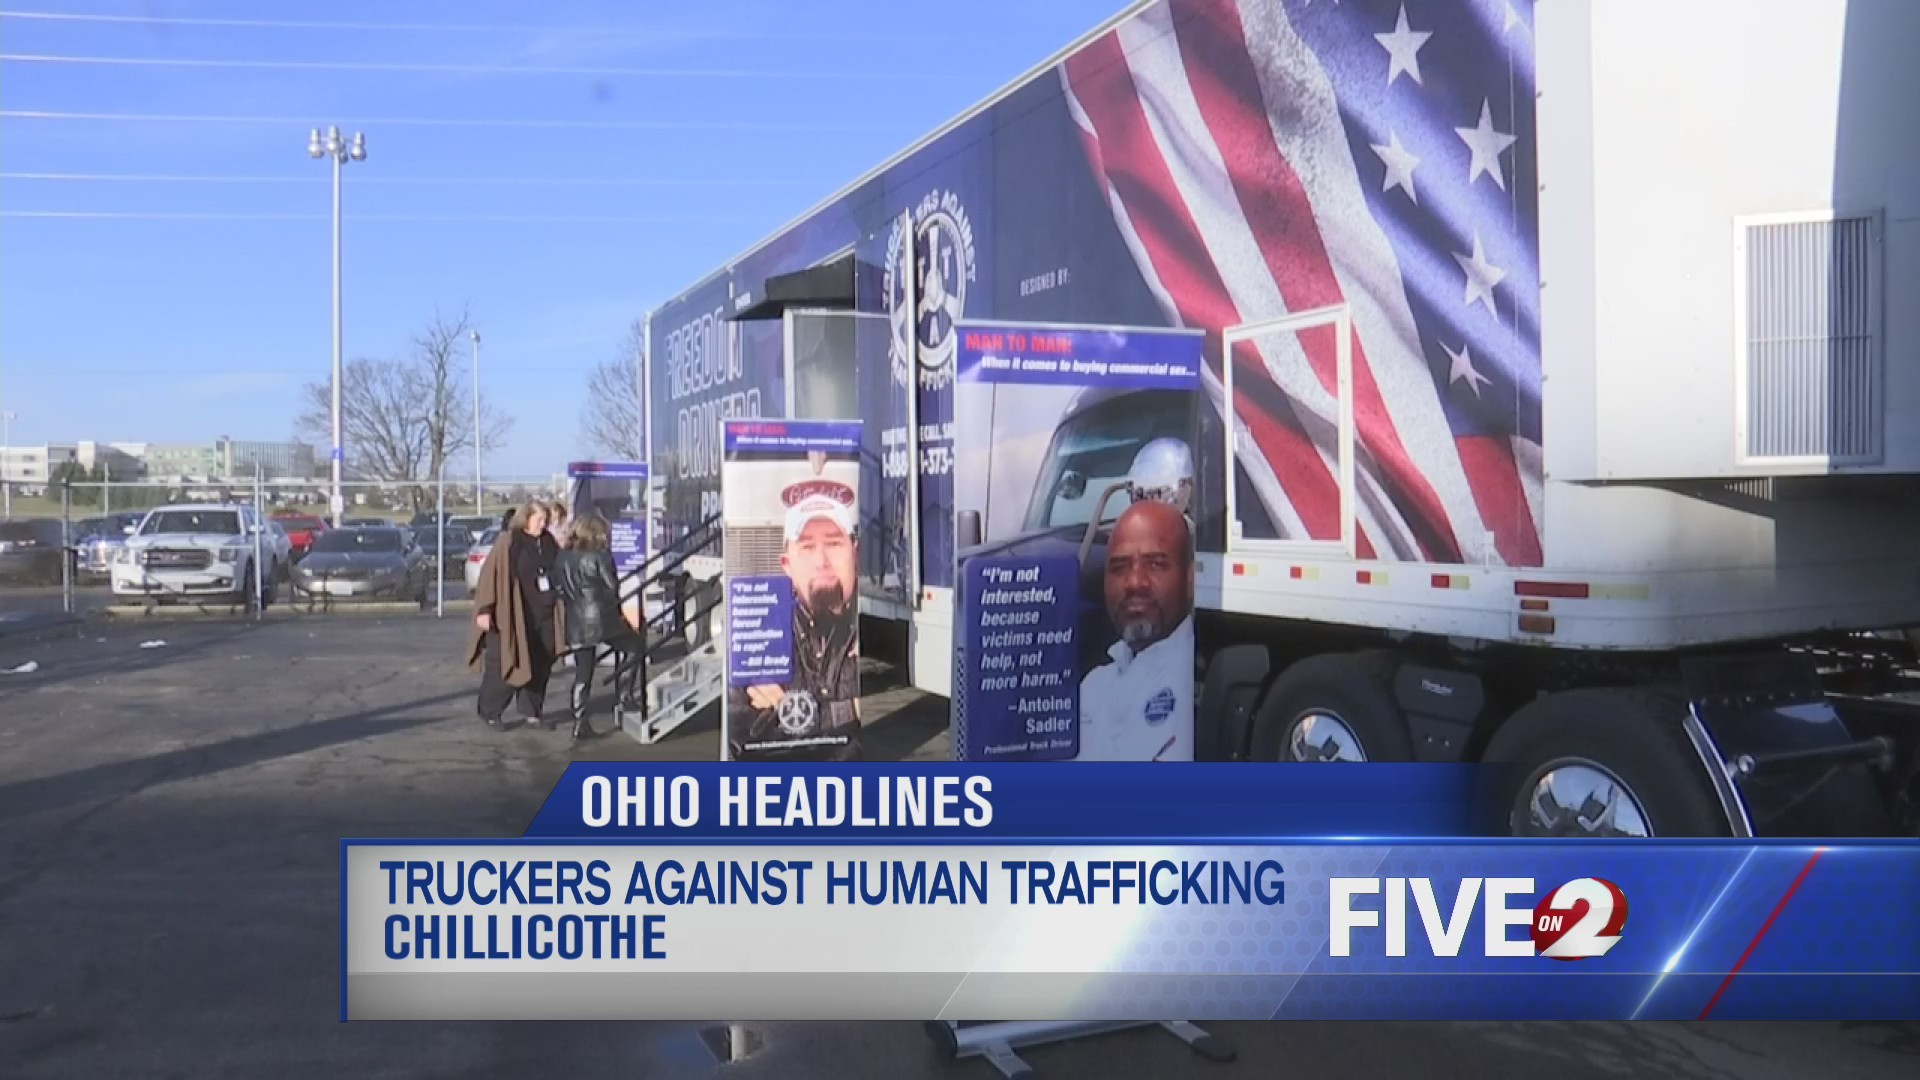 Truckers Against Human Trafficking